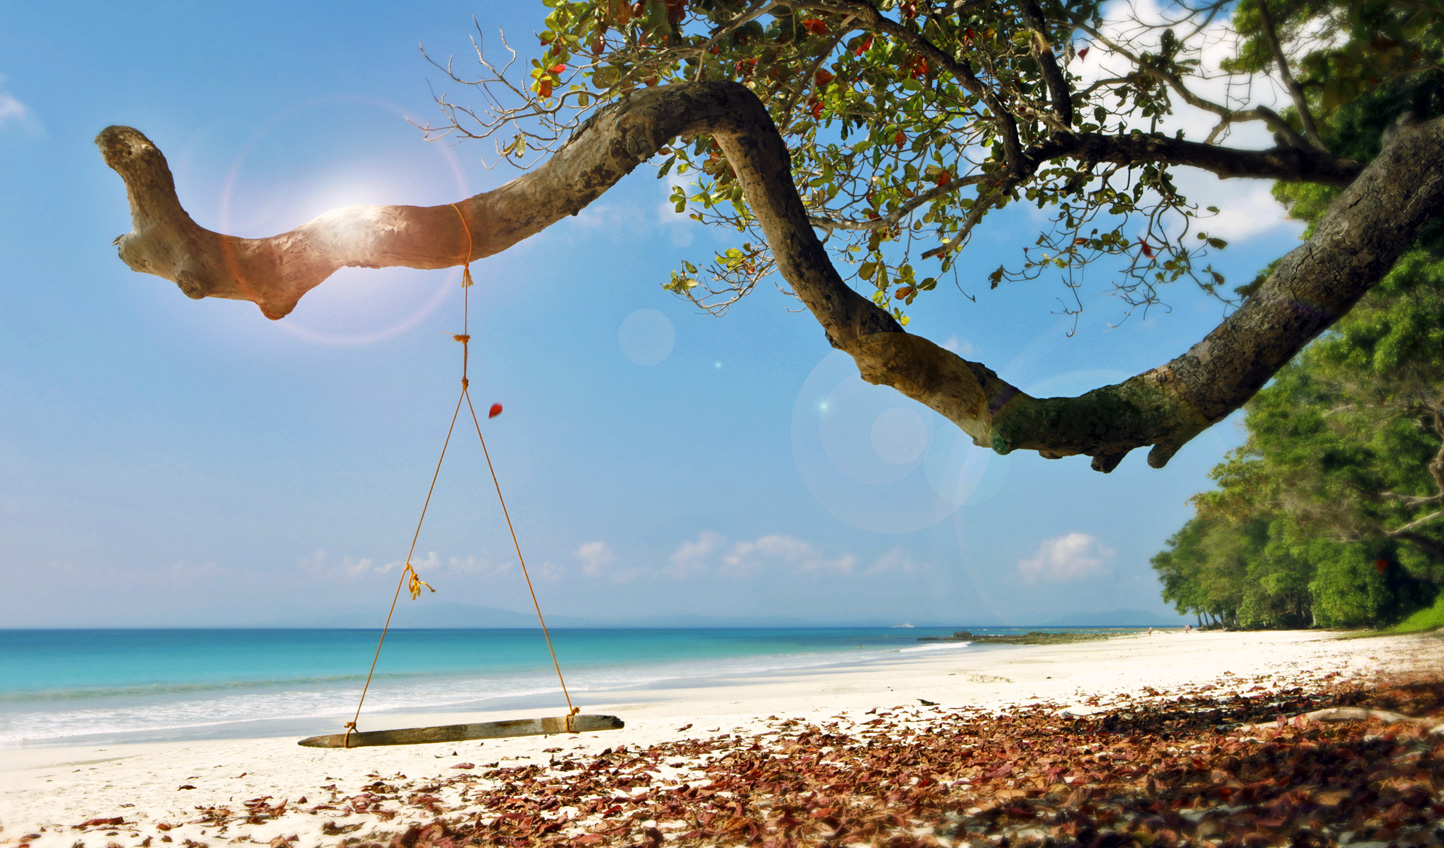 Slip into island life at Taj Exotica Resort & Spa, Andamans